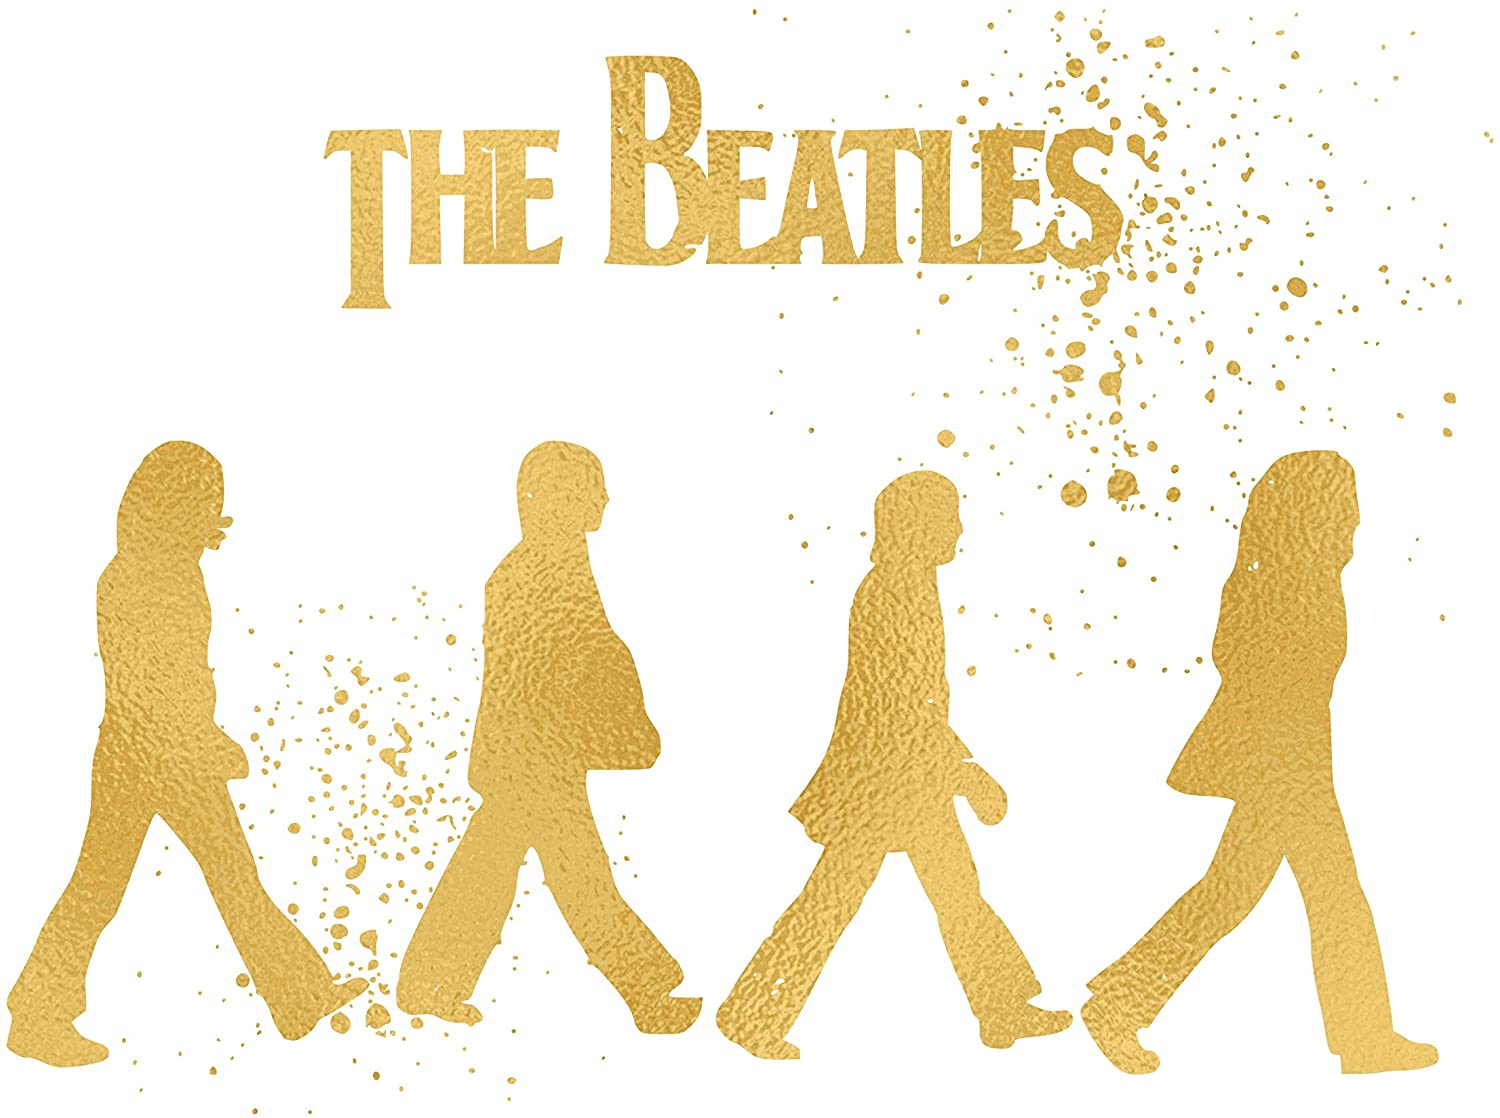 Simply Remarkable Inspired by The Beatles - Poster Print Photo Quality - Made in USA - John Lennon, Paul McCartney, George Harrison and Ringo Starr -Frame not Included (8x10, Beatles Walking Gold)